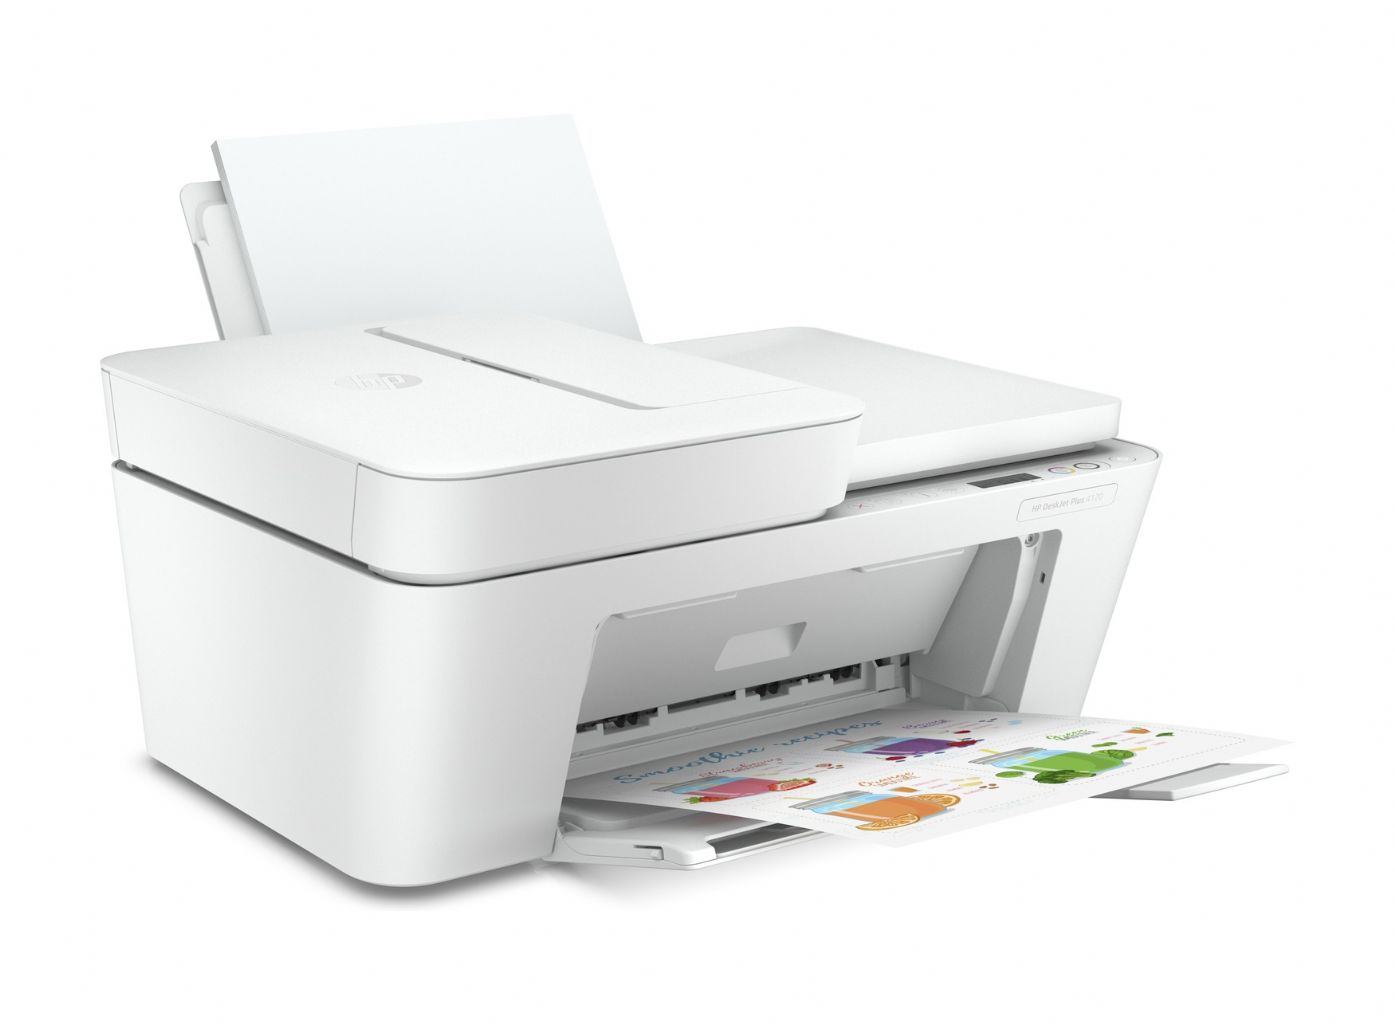 Stampante HP Deskjet Plus 4120 Wi-Fi Copia+Scansione+Stampa+Fax